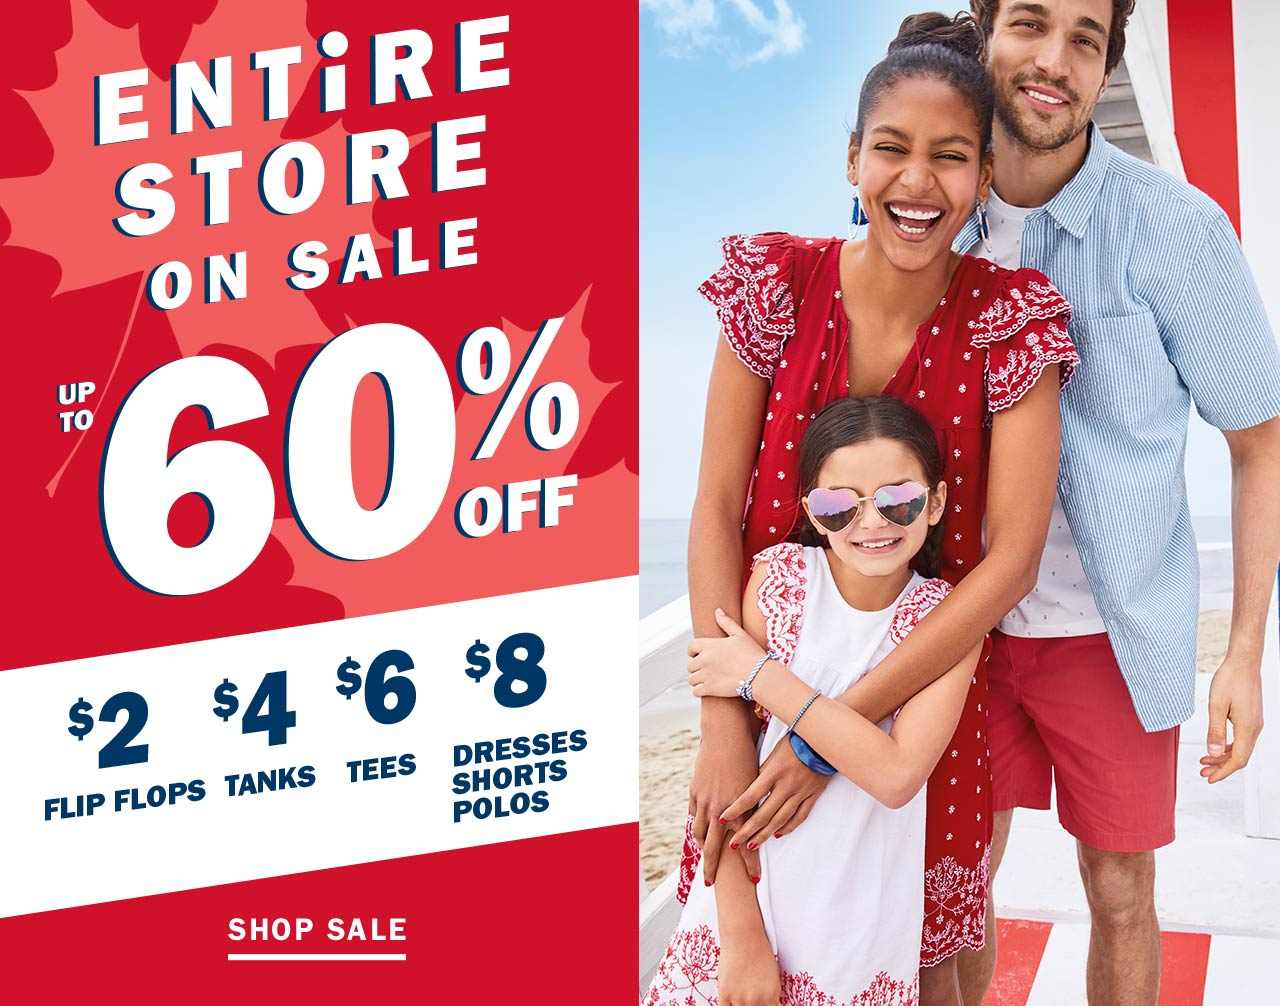 ENTiRE STORE ON SALE UP TO 60% OFF | SHOP SALE